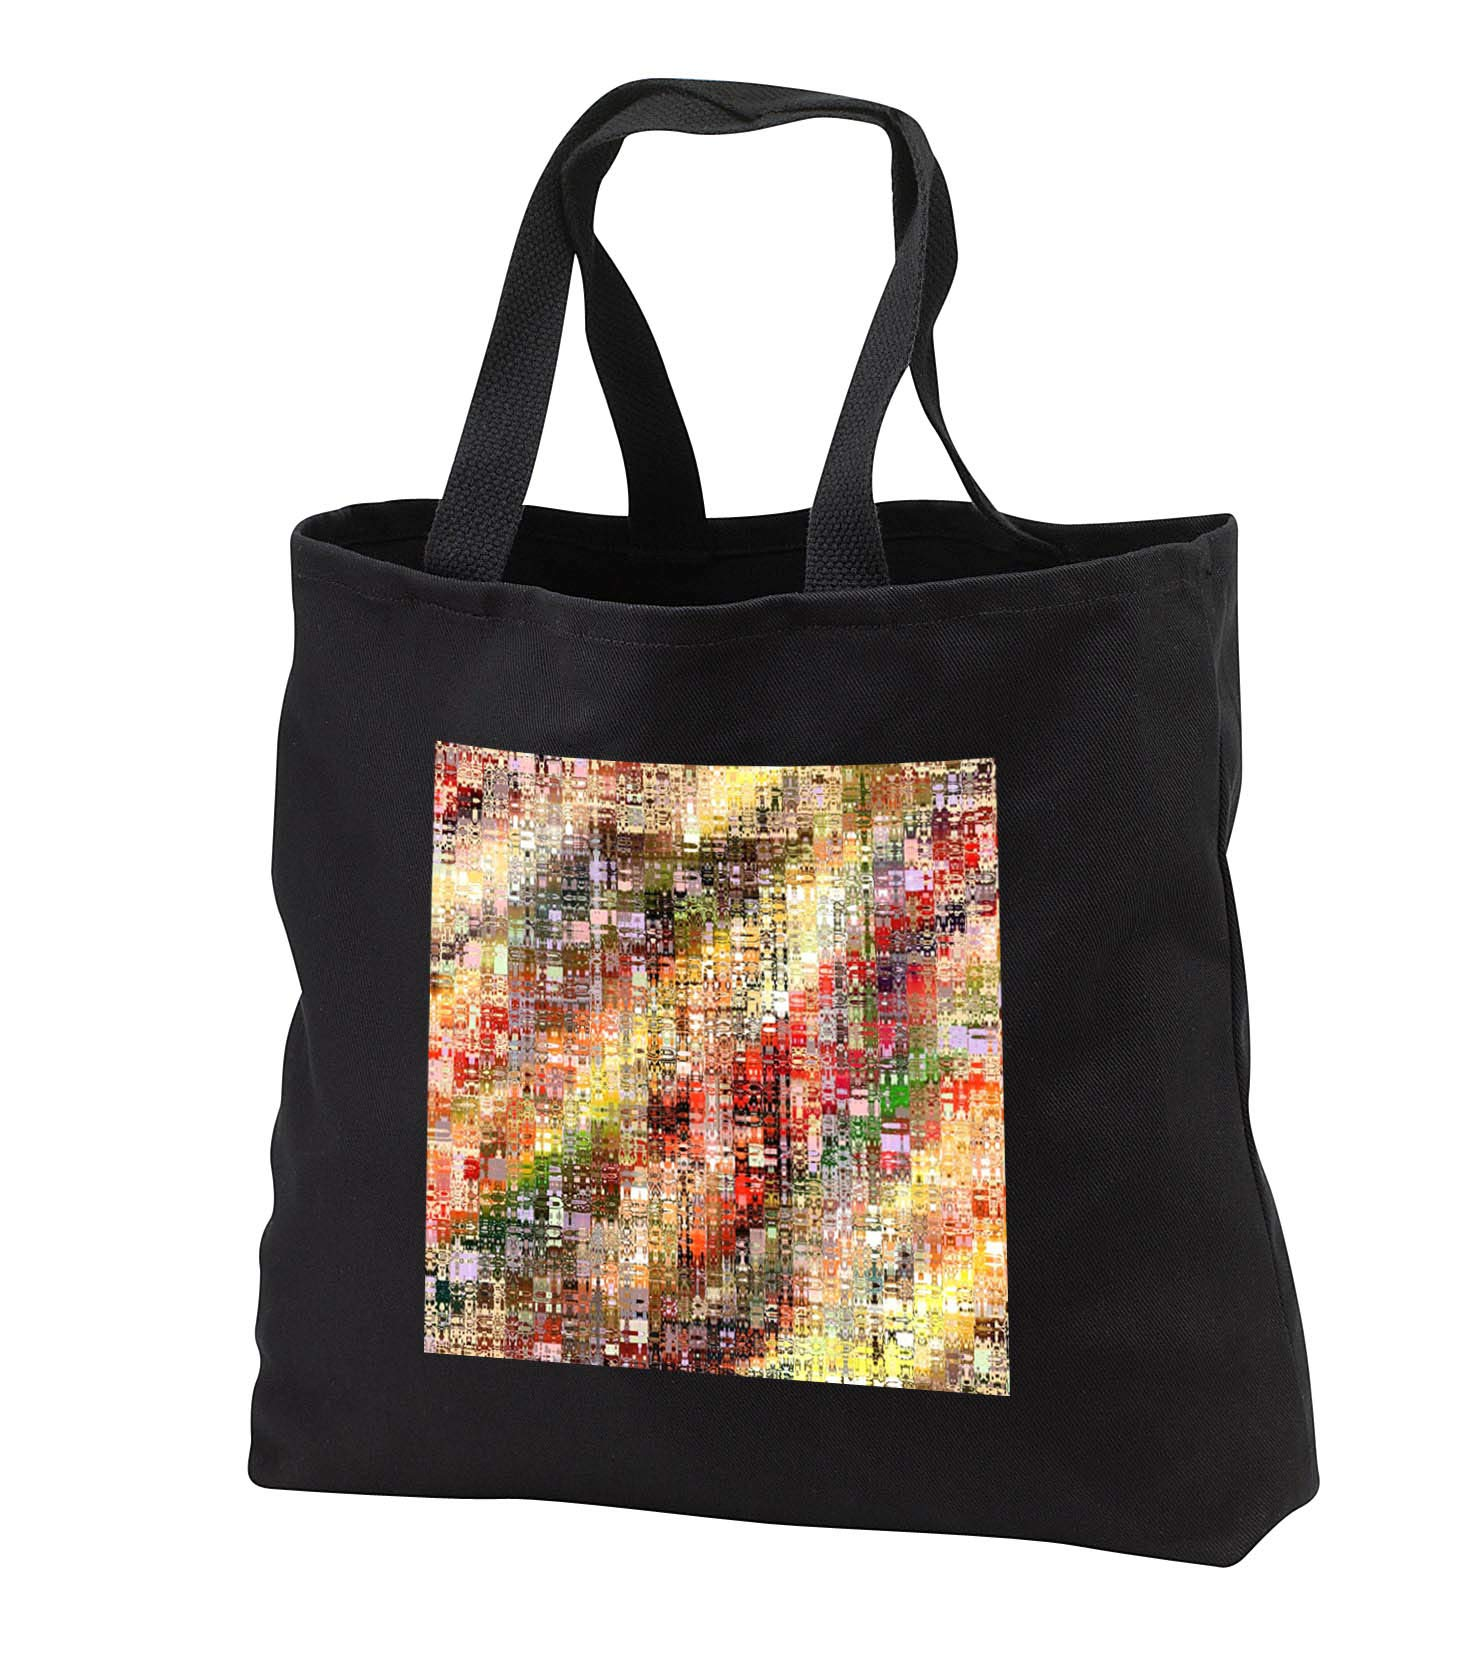 lens Art by Florene - Geometric Abstract - Image of Multicolor Painting On Glass - Tote Bags - Black Tote Bag 14w x 14h x 3d (tb_295112_1)